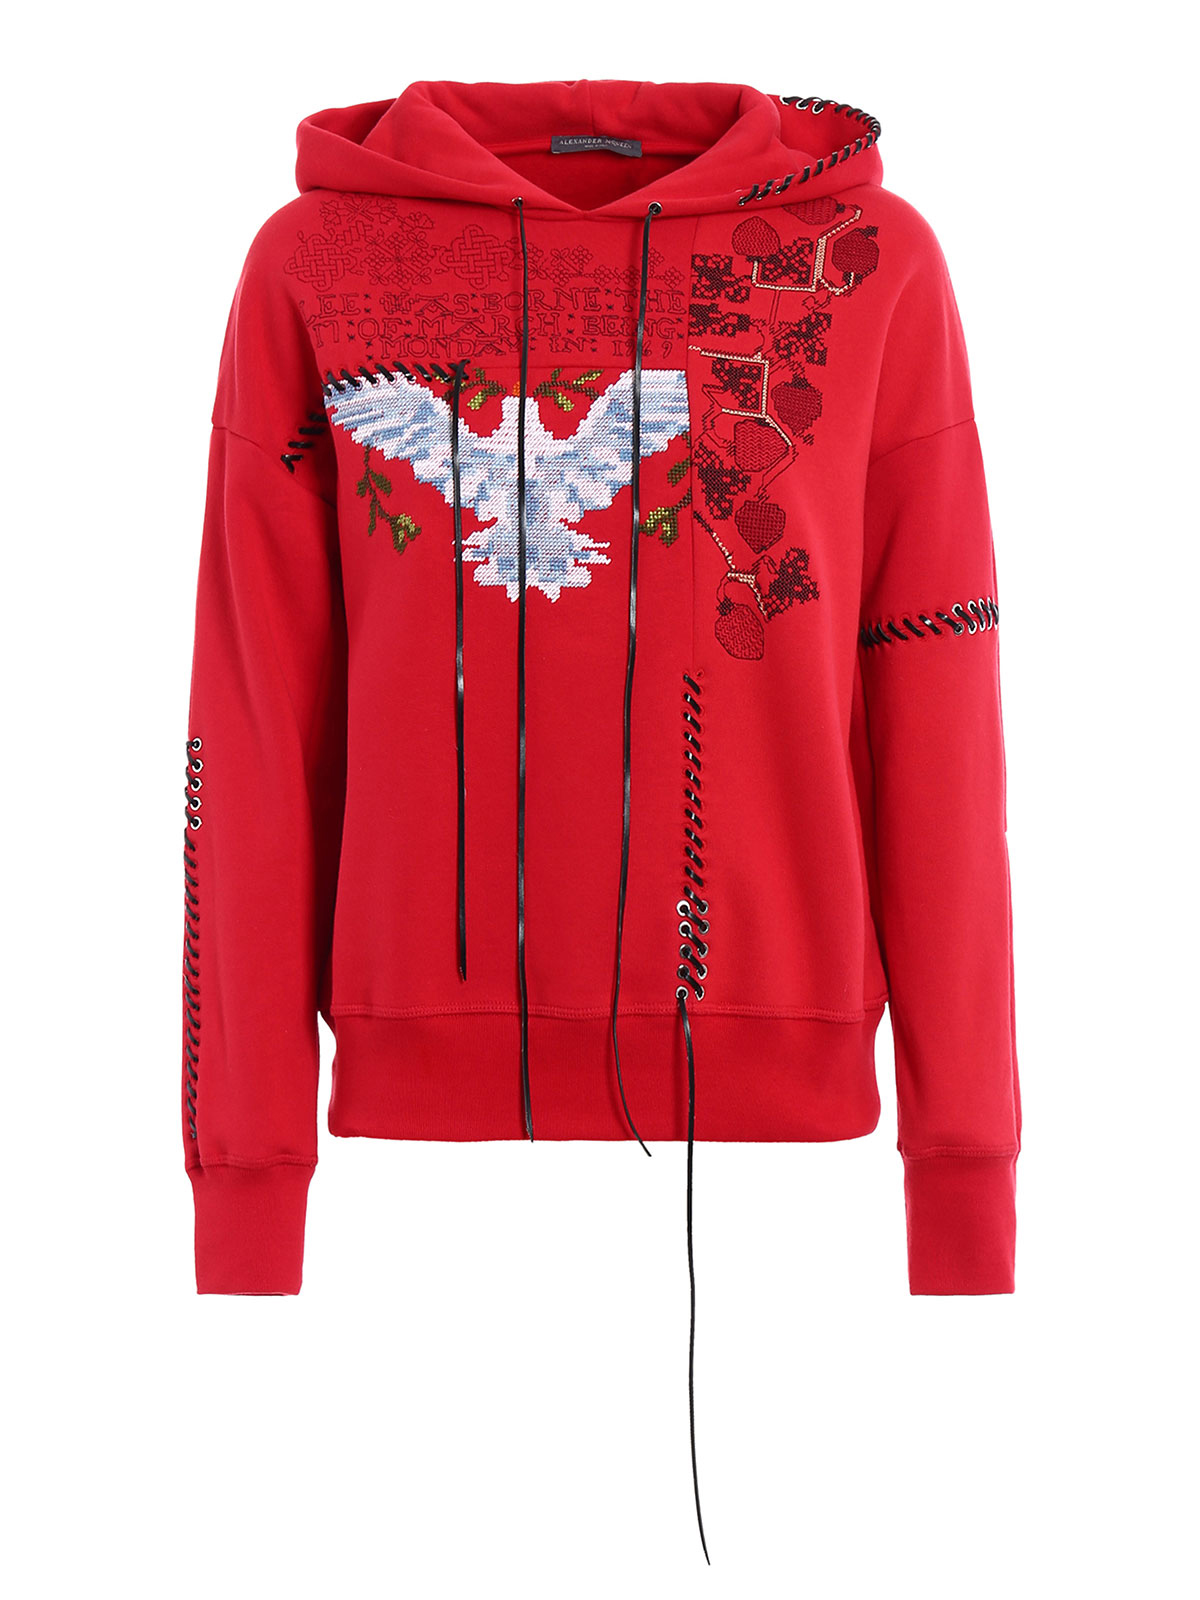 embroidered cotton red hoodie by alexander mcqueen sweatshirts sweaters ikrix. Black Bedroom Furniture Sets. Home Design Ideas